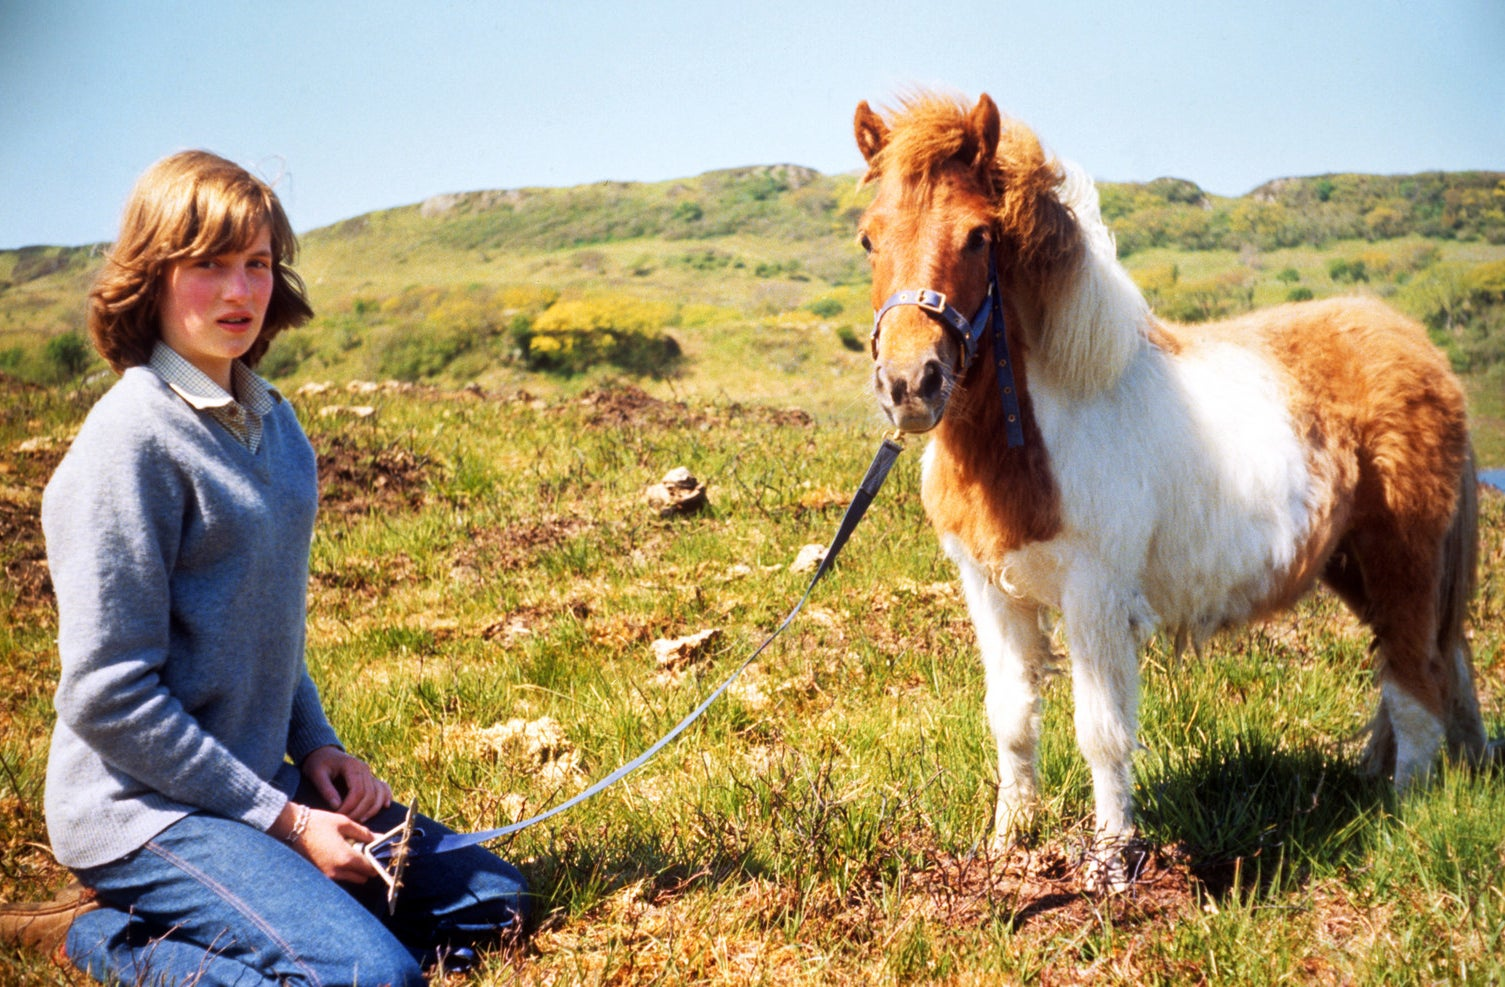 Lady Diana Spencer with a Shetland pony at her mother's home in Scotland, 1974.